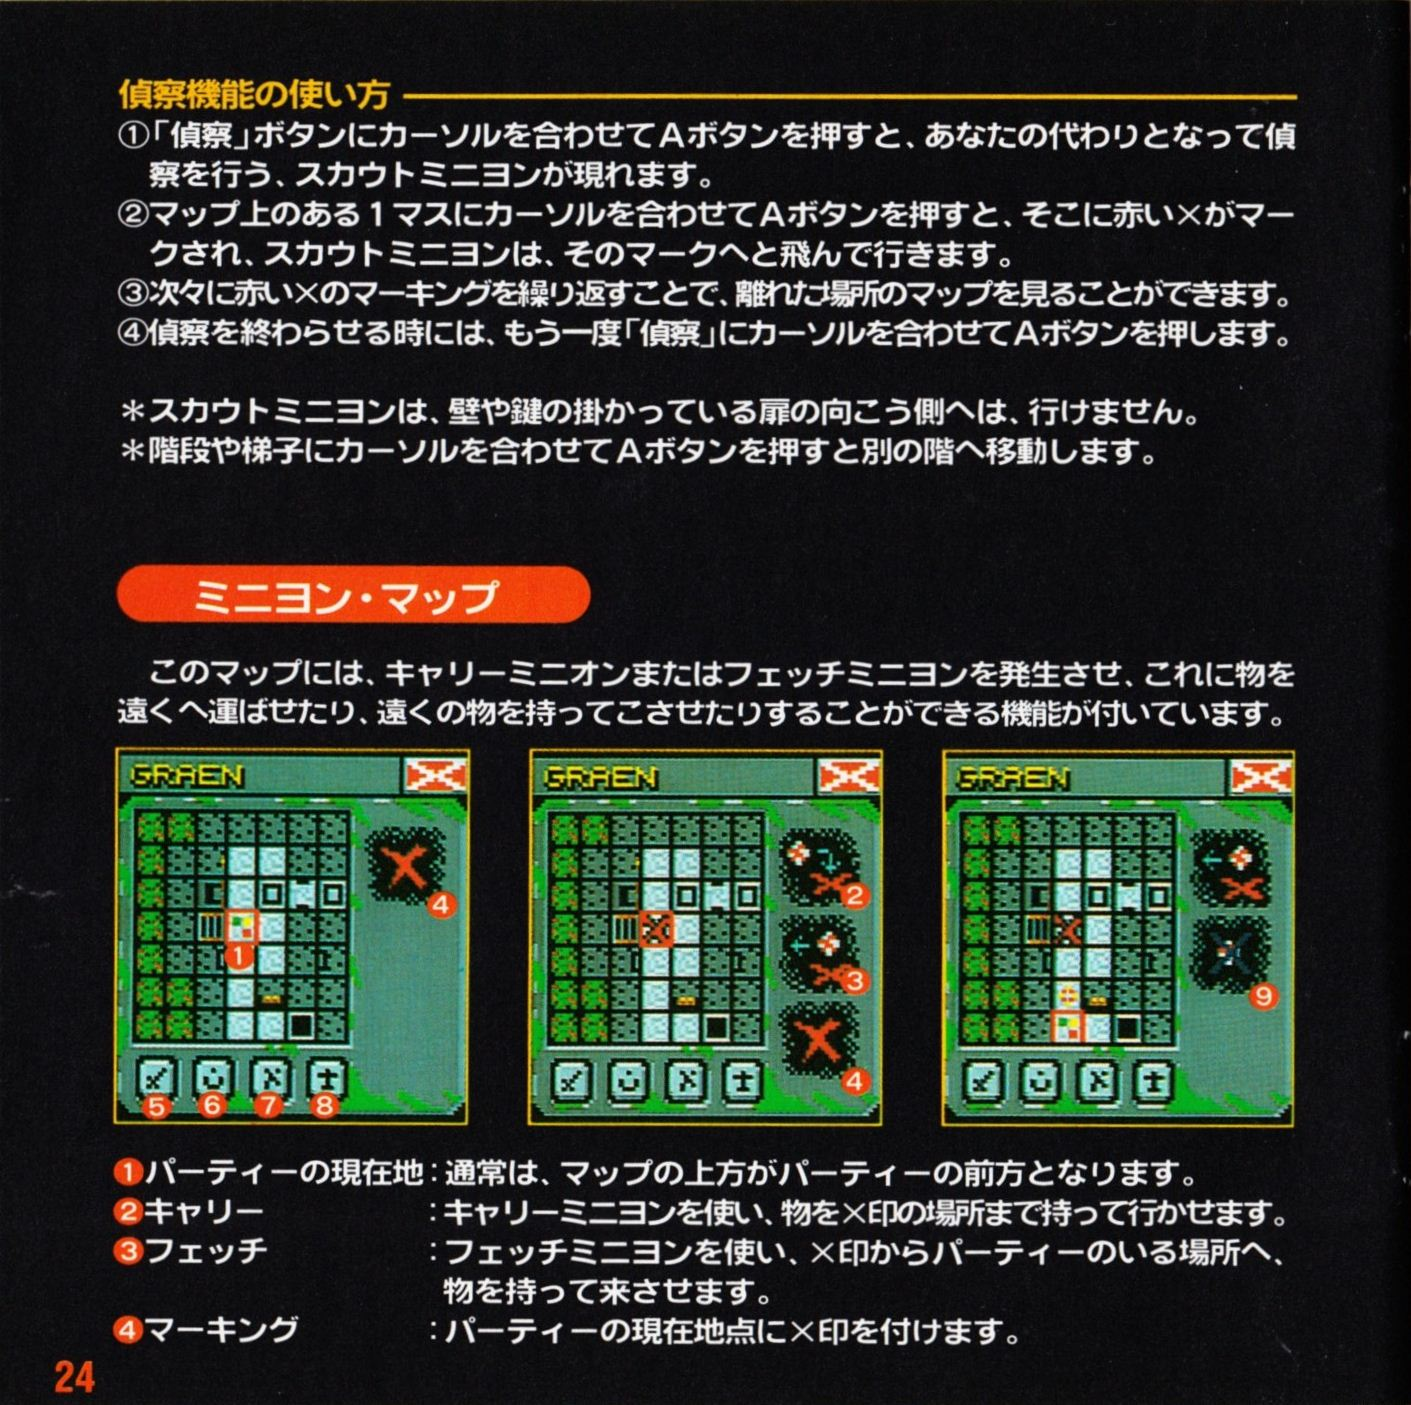 Game - Dungeon Master II - JP - Mega CD - Booklet - Page 026 - Scan